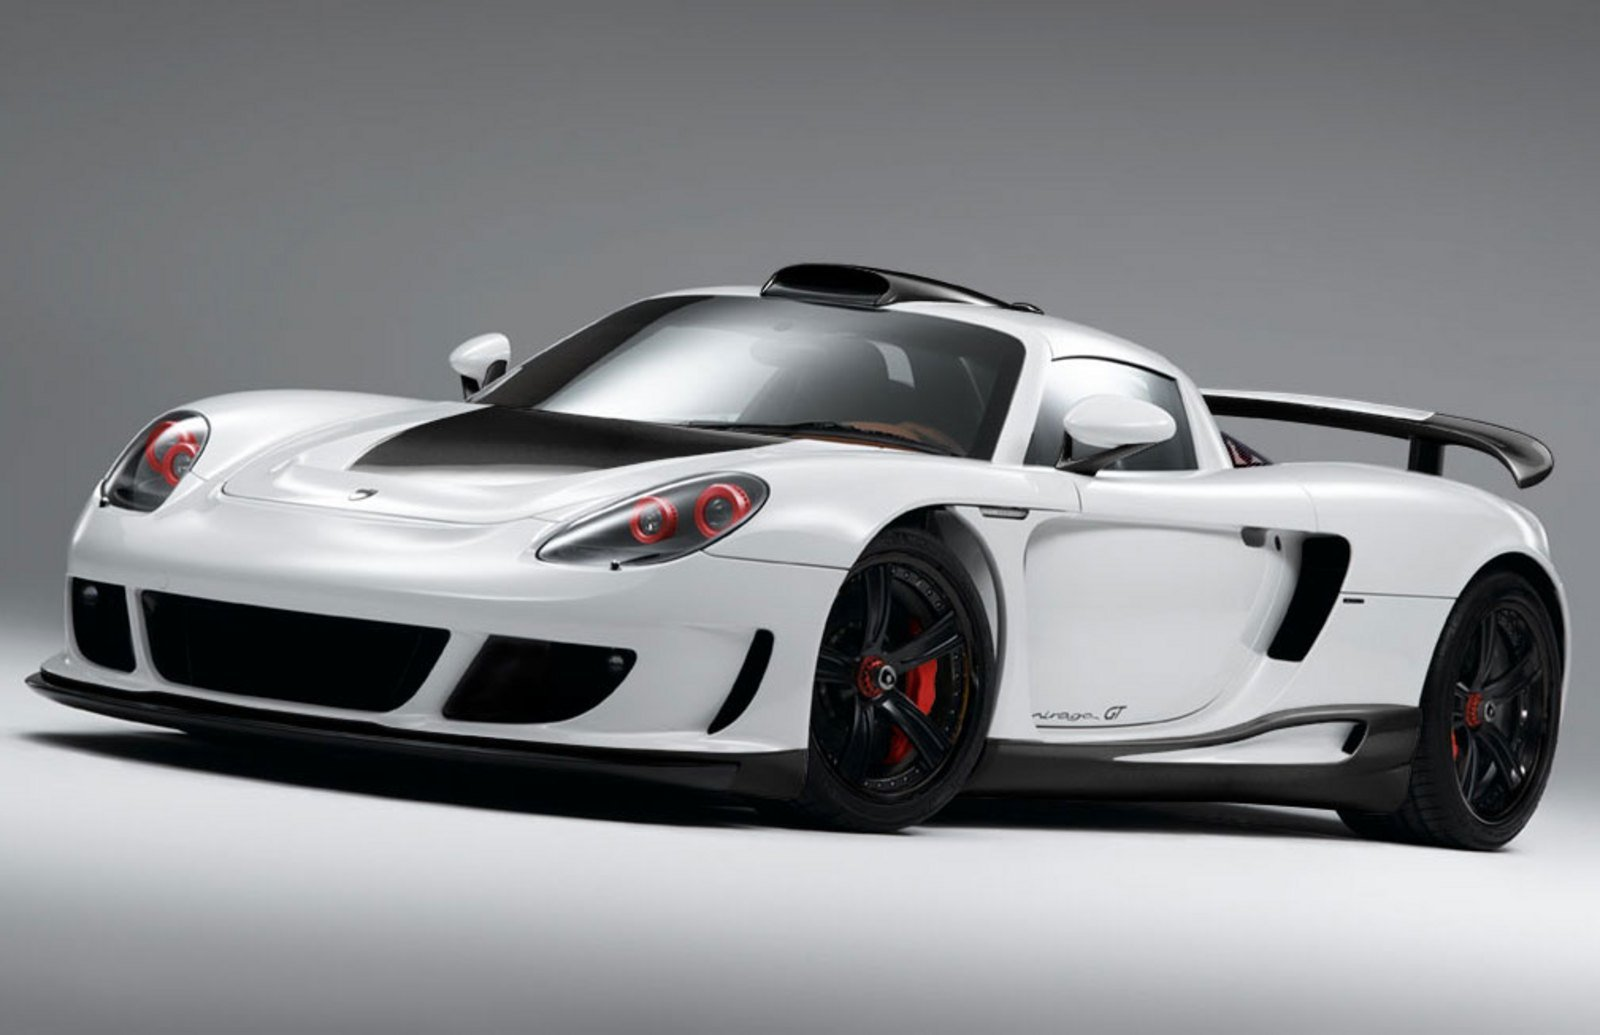 gemballa mirage gt carbon edition based on the porsche carrera gt news top speed. Black Bedroom Furniture Sets. Home Design Ideas